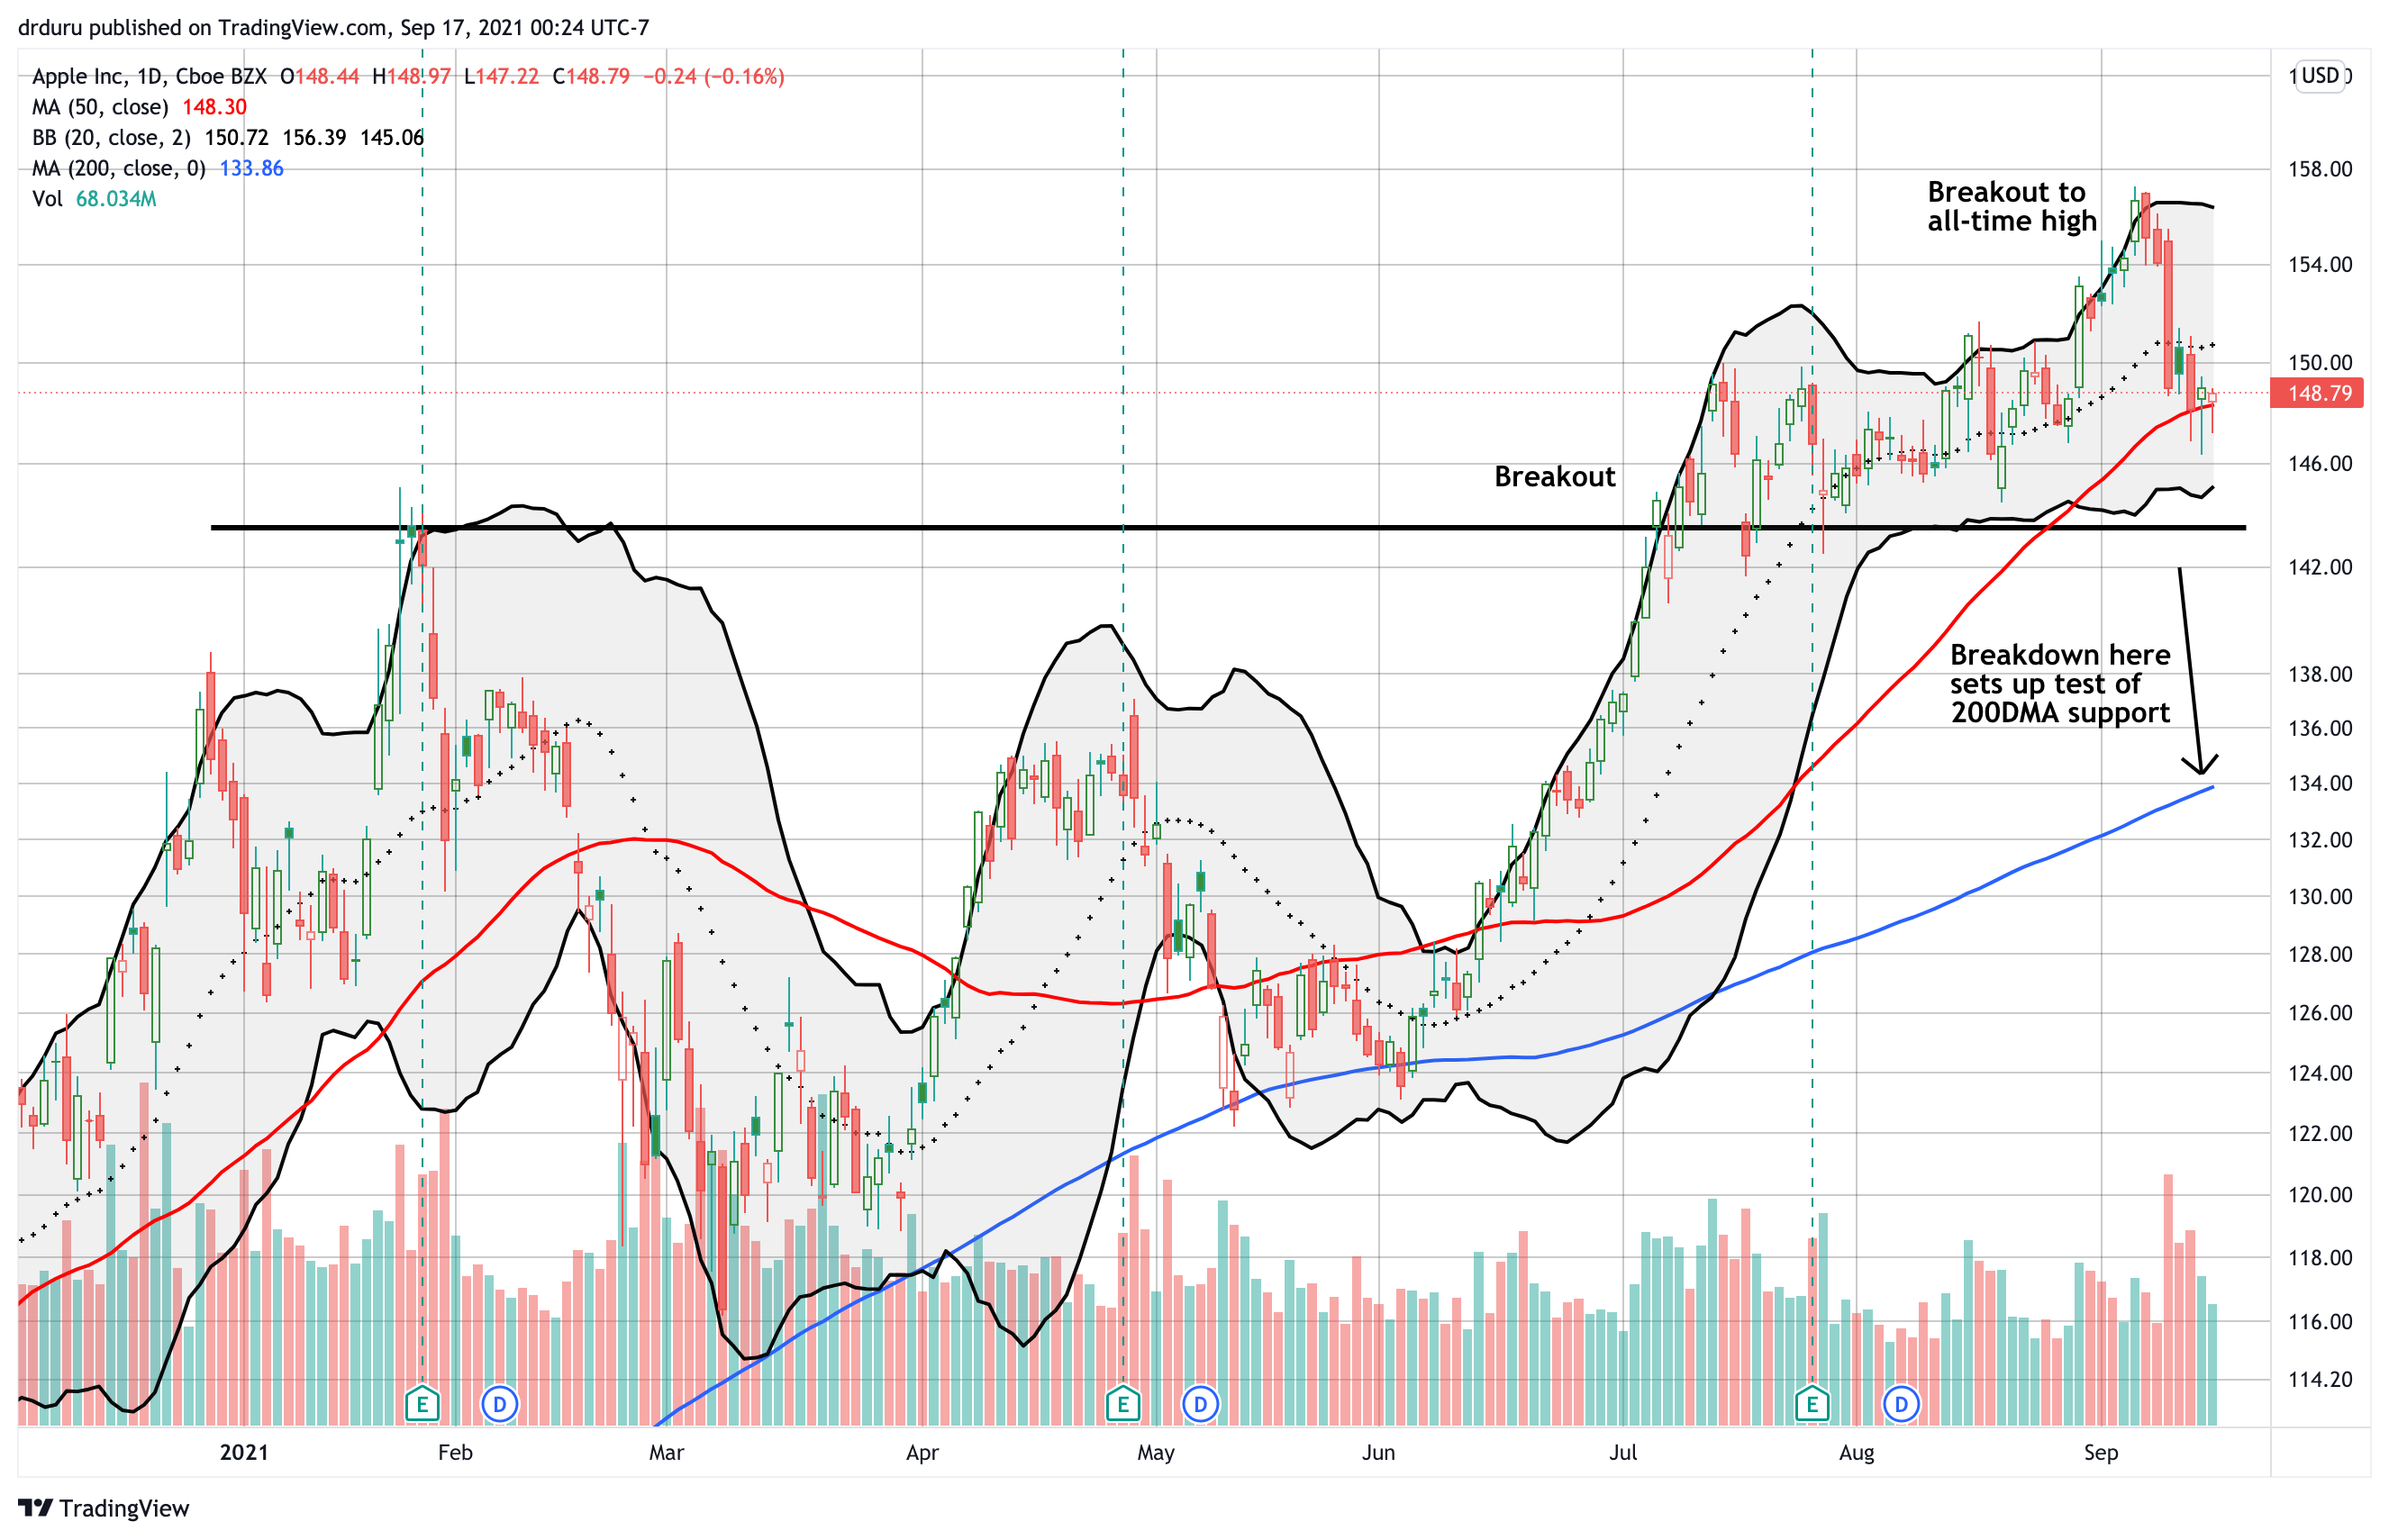 Apple (AAPL) has spent the last three trading days hugging its 50DMA with consecutive rebounds off intraday lows.